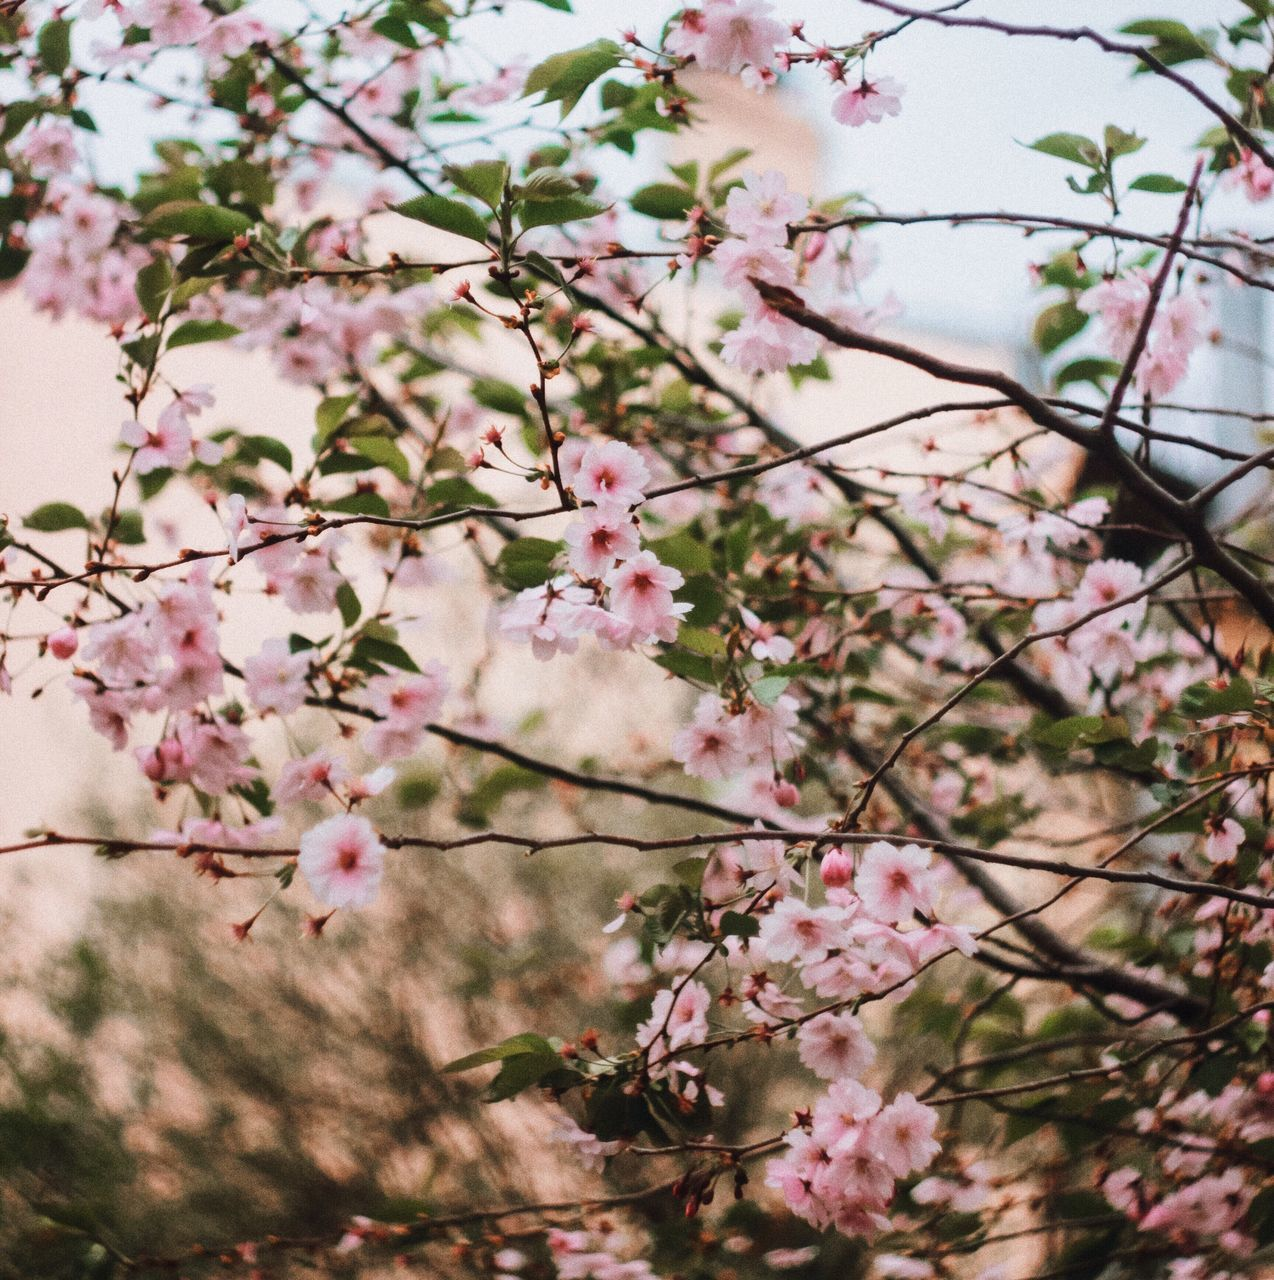 flower, blossom, growth, fragility, tree, nature, branch, springtime, beauty in nature, freshness, botany, apple blossom, no people, twig, pink color, day, low angle view, outdoors, close-up, blooming